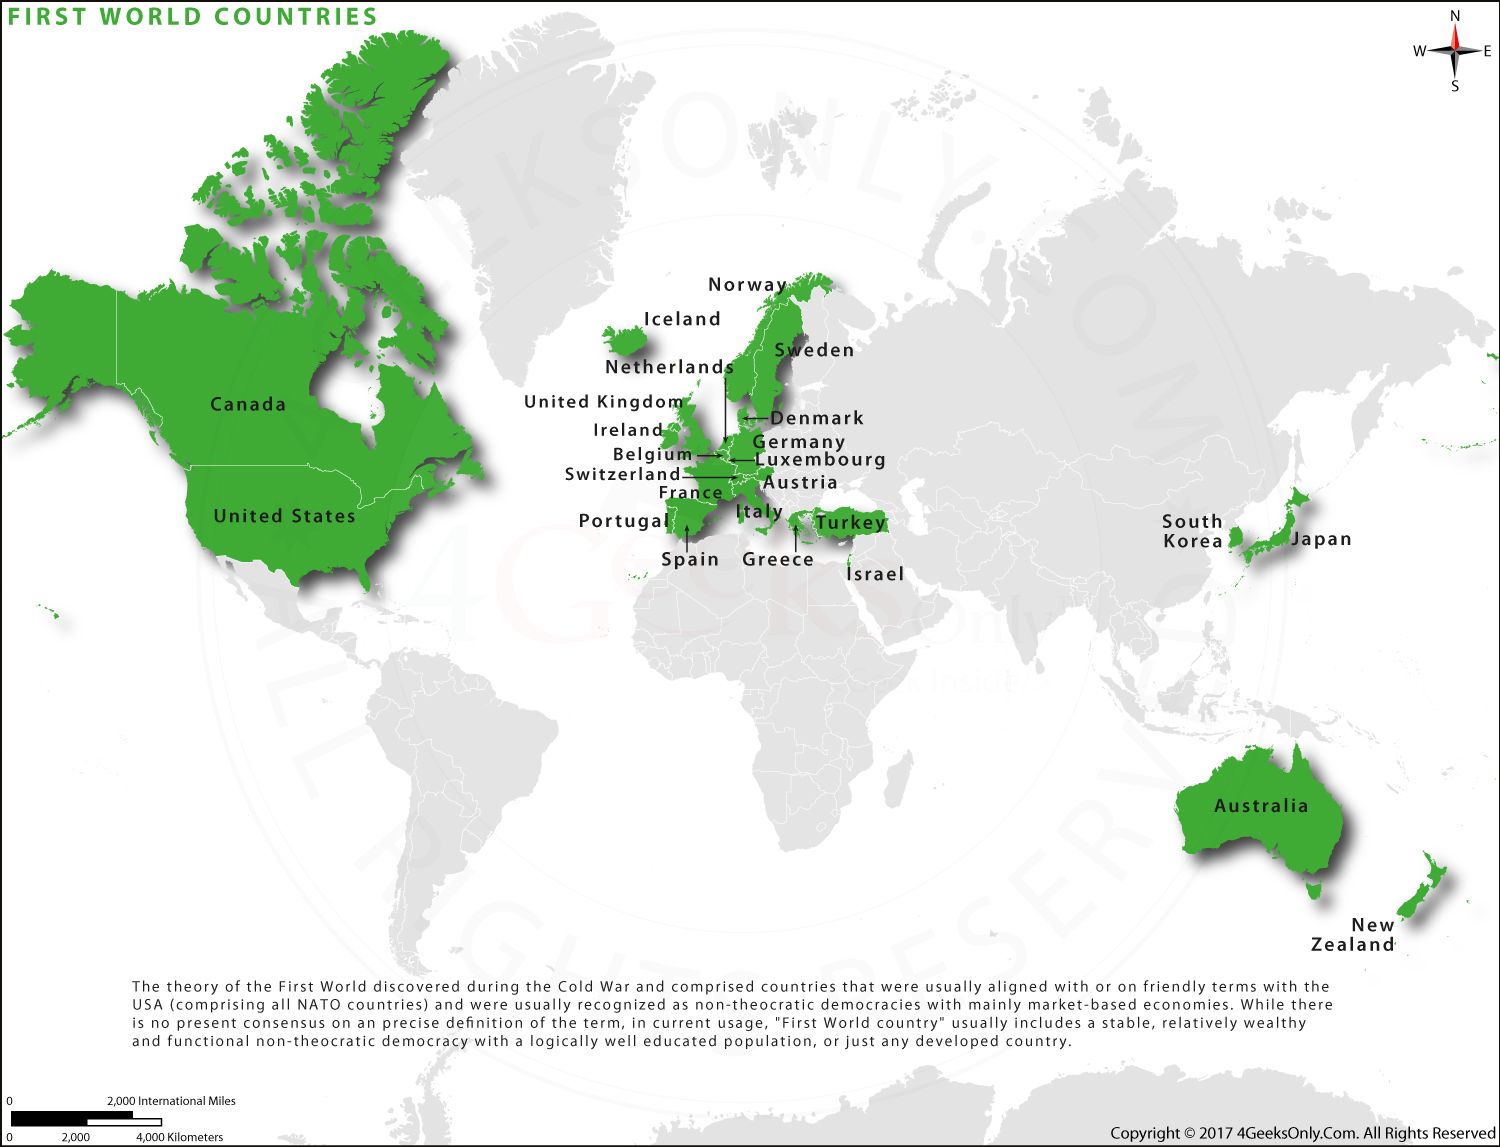 First World Countries Map in HD